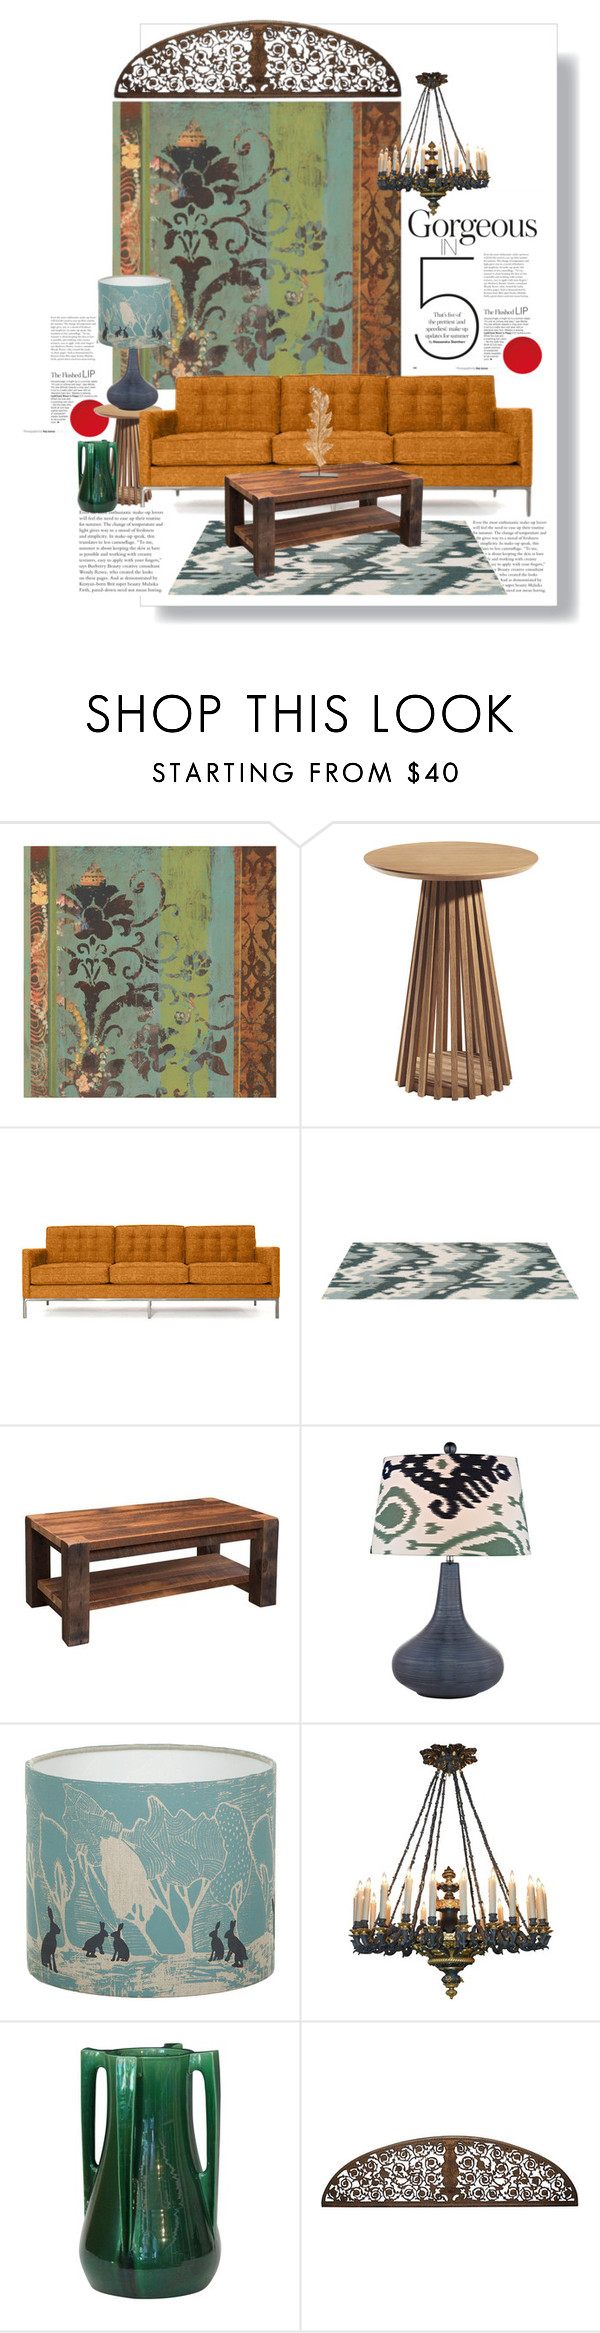 """""""Mix"""" by jesking ❤ liked on Polyvore featuring interior, interiors, interior design, home, home decor, interior decorating, Thrive, DutchCrafters, Orwell and Goode and Aidan Gray"""